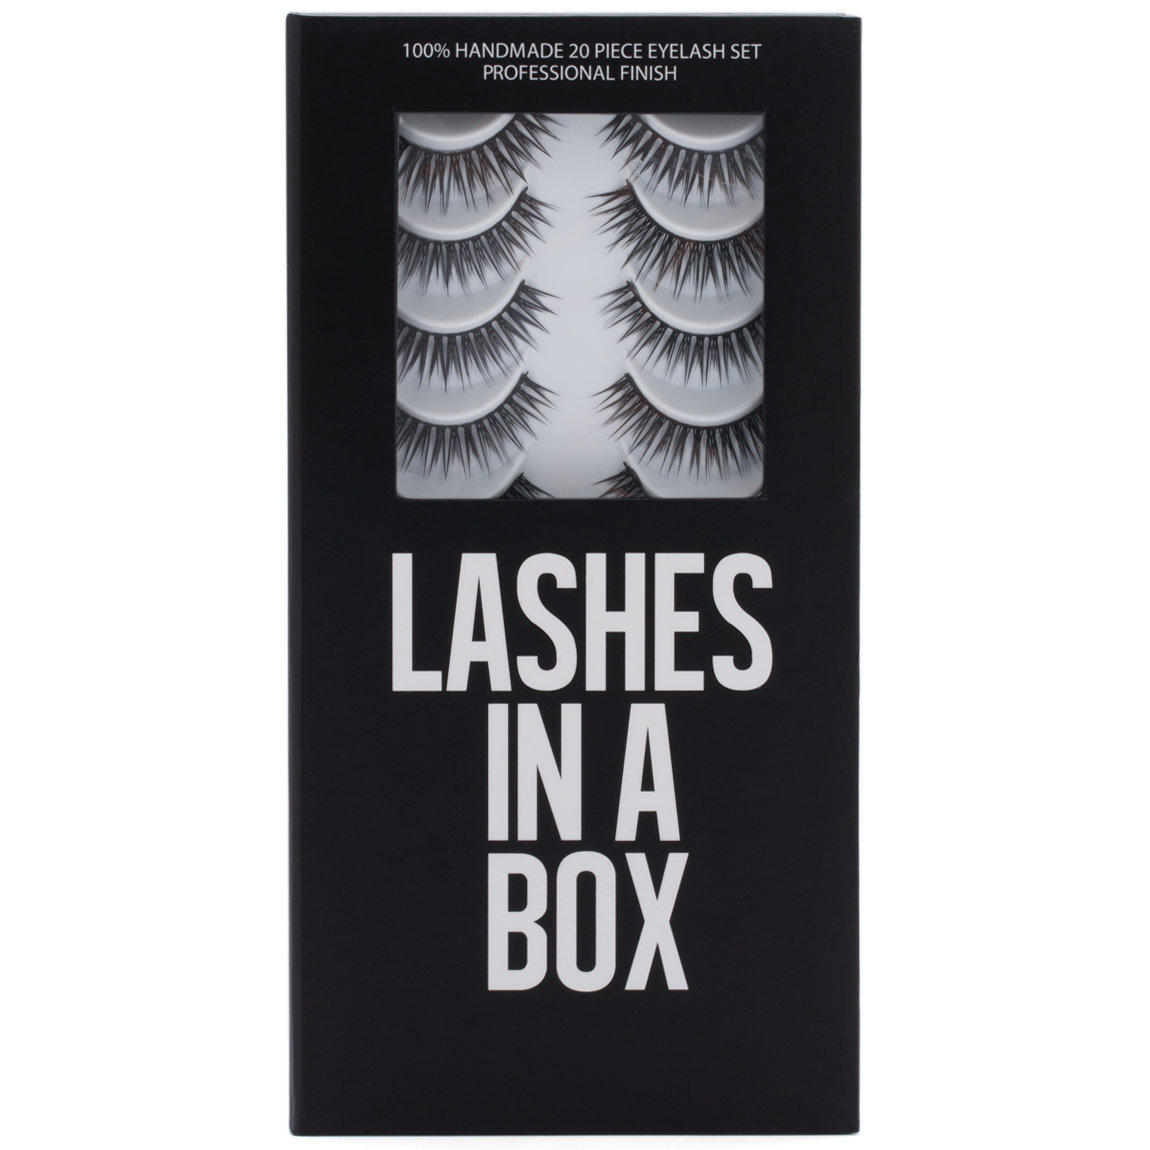 LASHES IN A BOX N°6 product swatch.